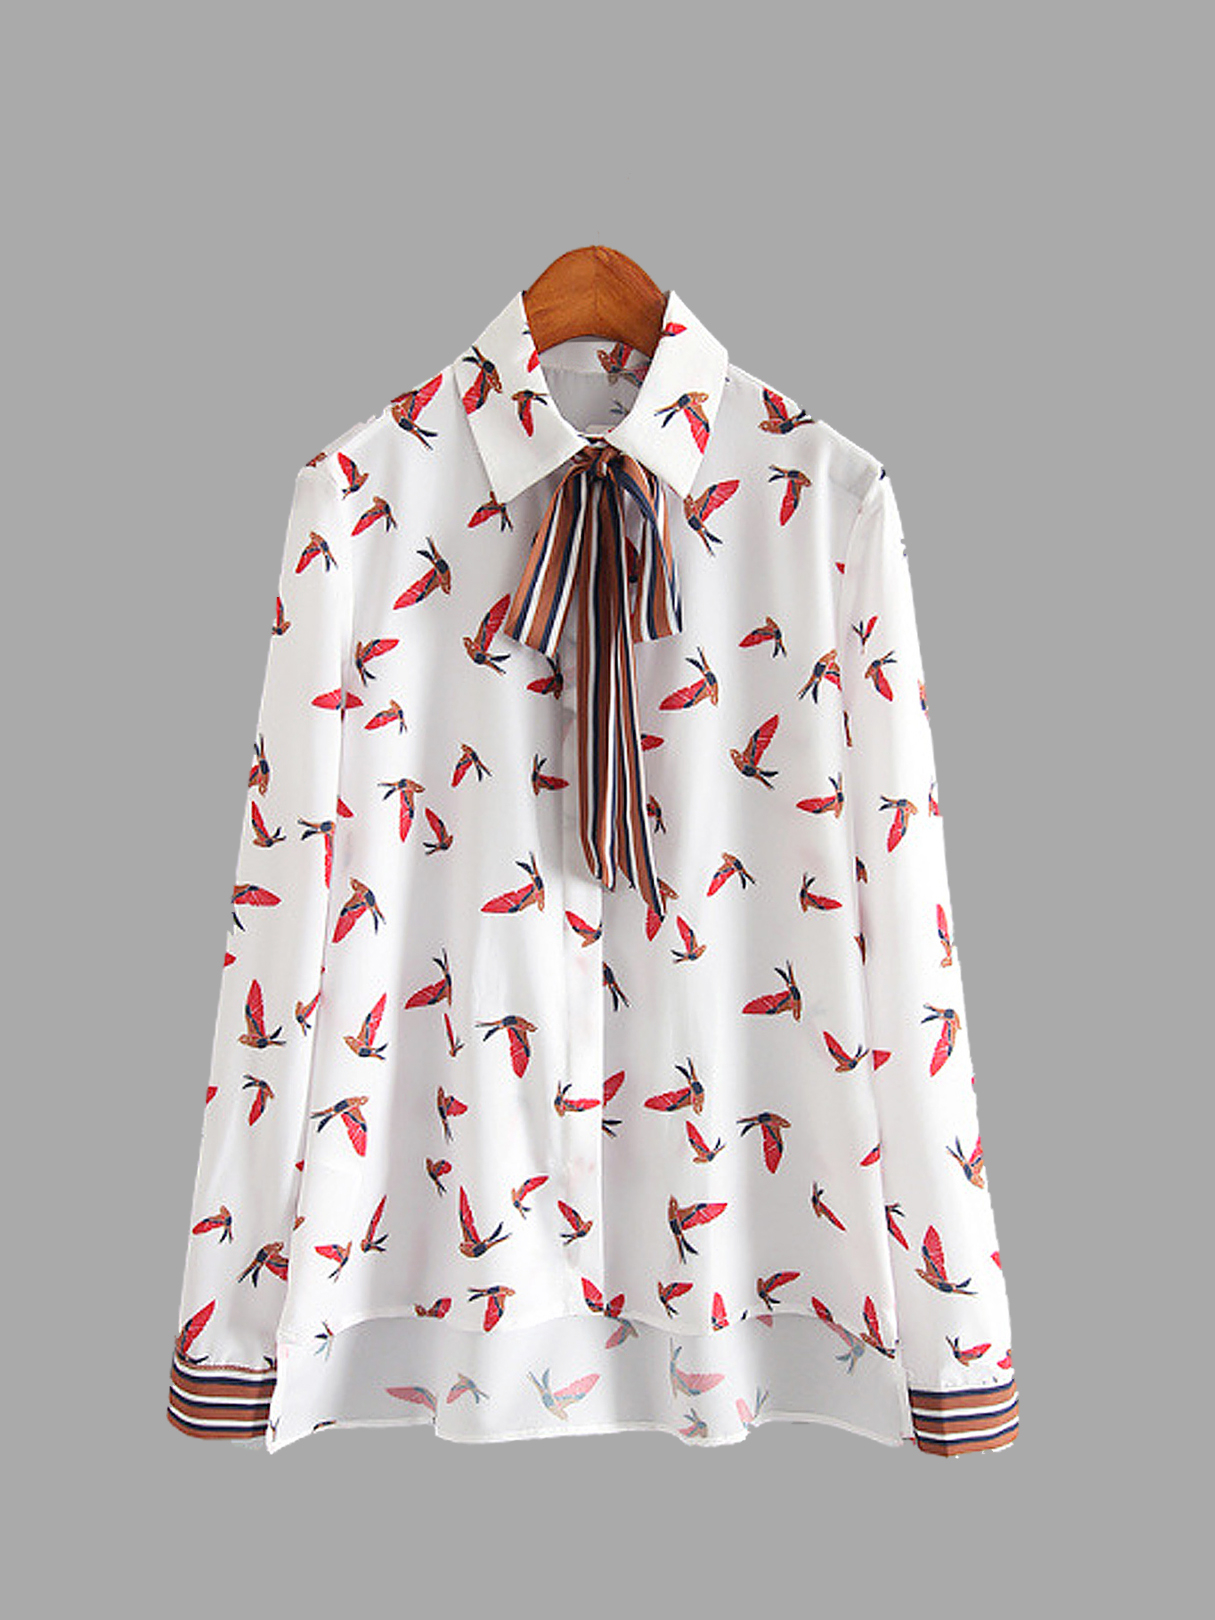 Bird Printing High Low Hem Shirt with Tie Neck